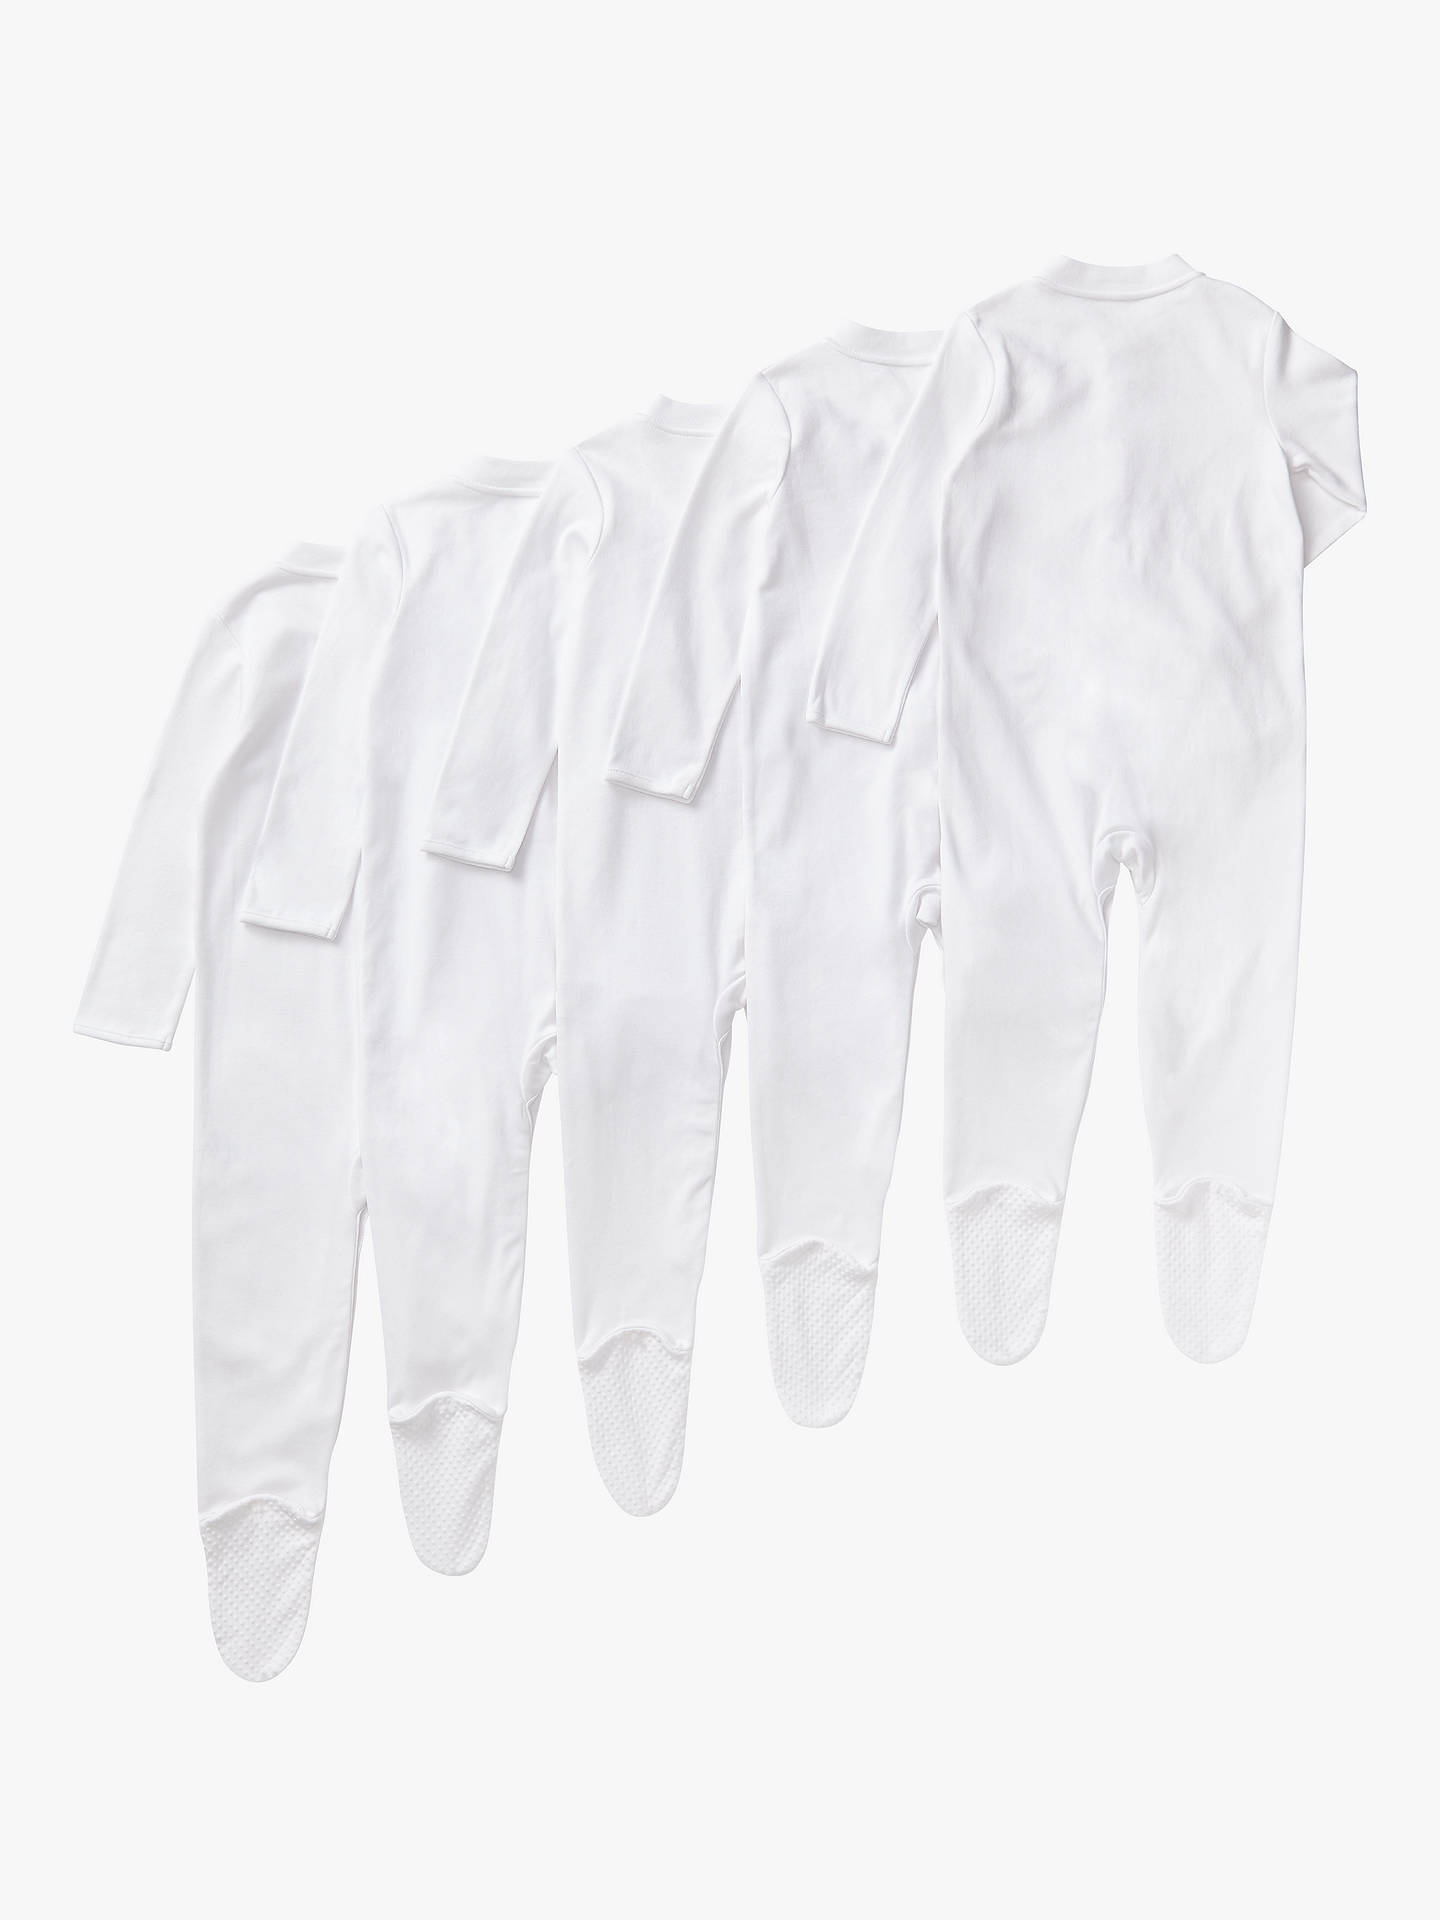 BuyJohn Lewis & Partners Baby Long Sleeve GOTS Organic Cotton Sleepsuit, Pack of 5, White, Early baby Online at johnlewis.com